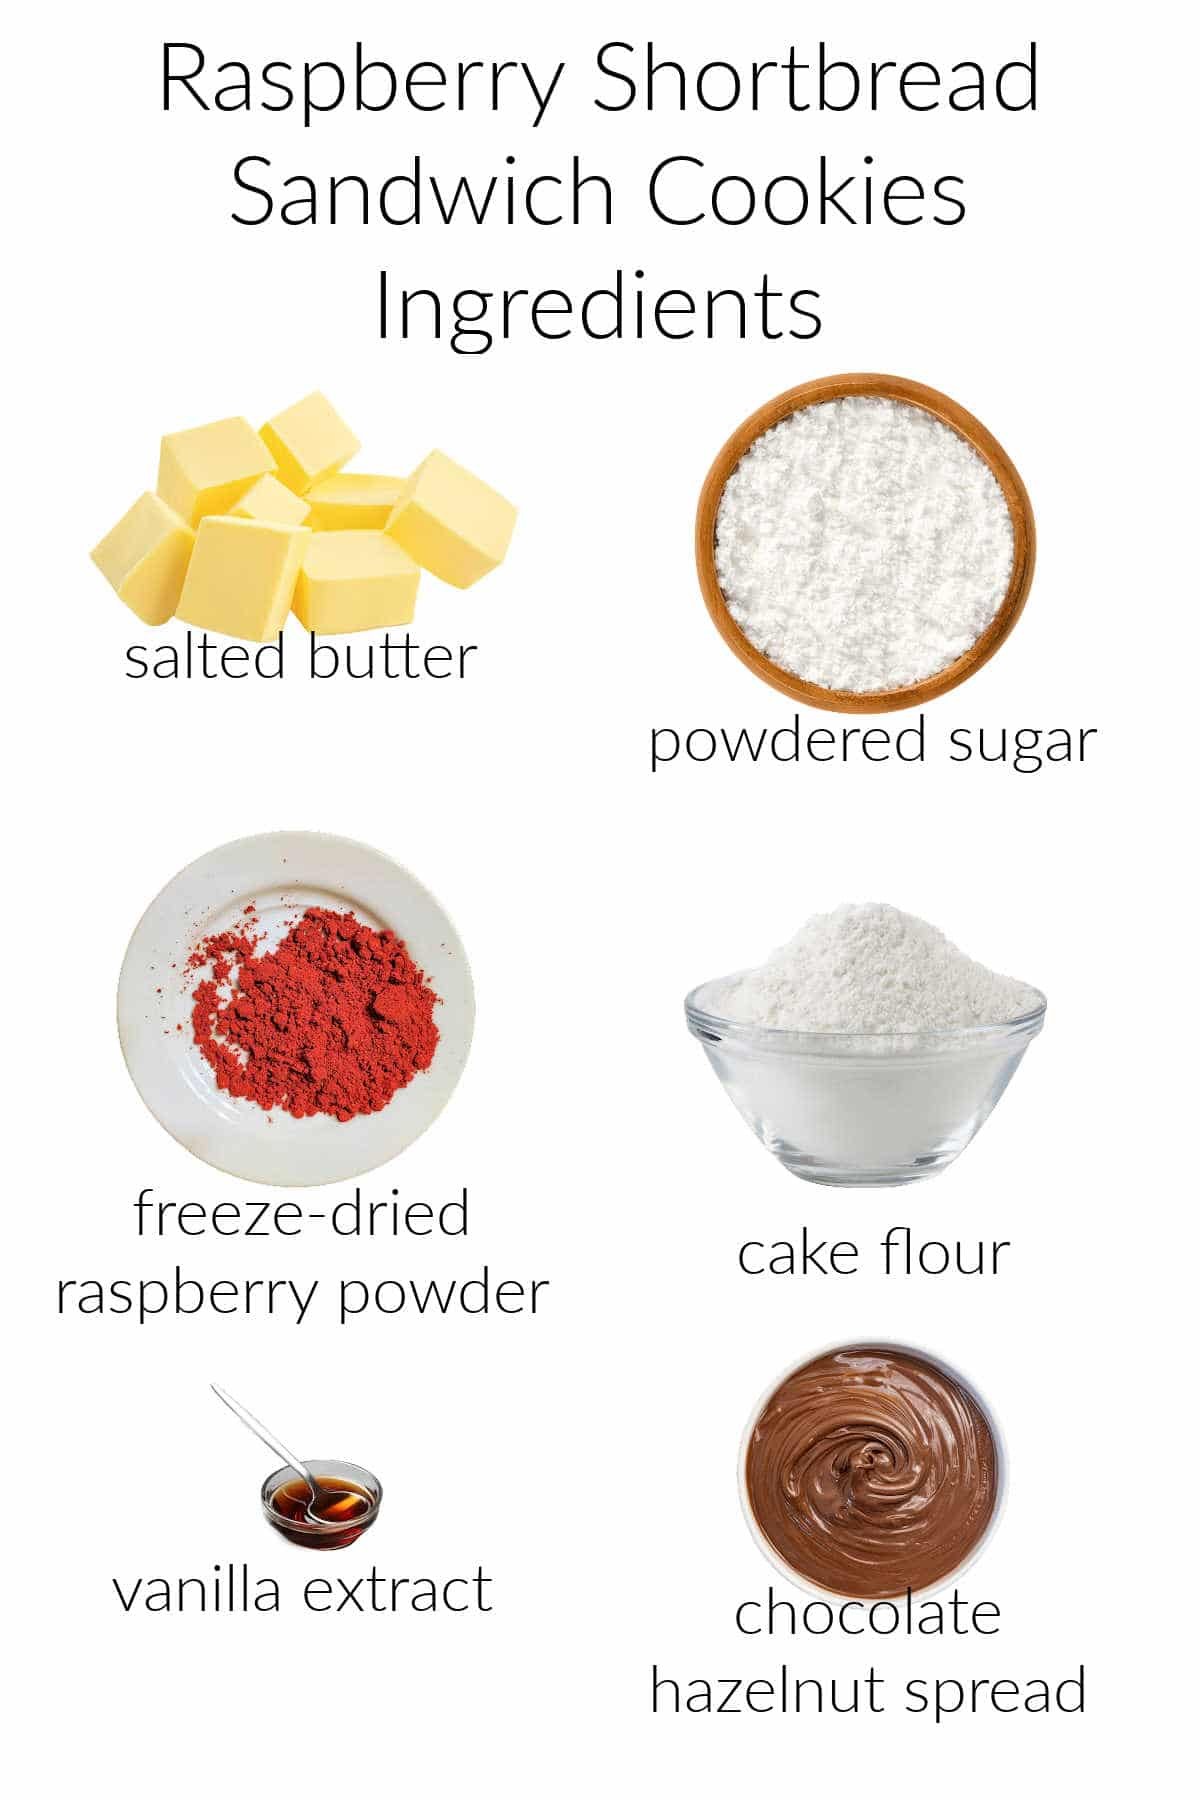 Collage of the 6 ingredients needed to make raspberry shortbread sandwich cookies with text overlay.